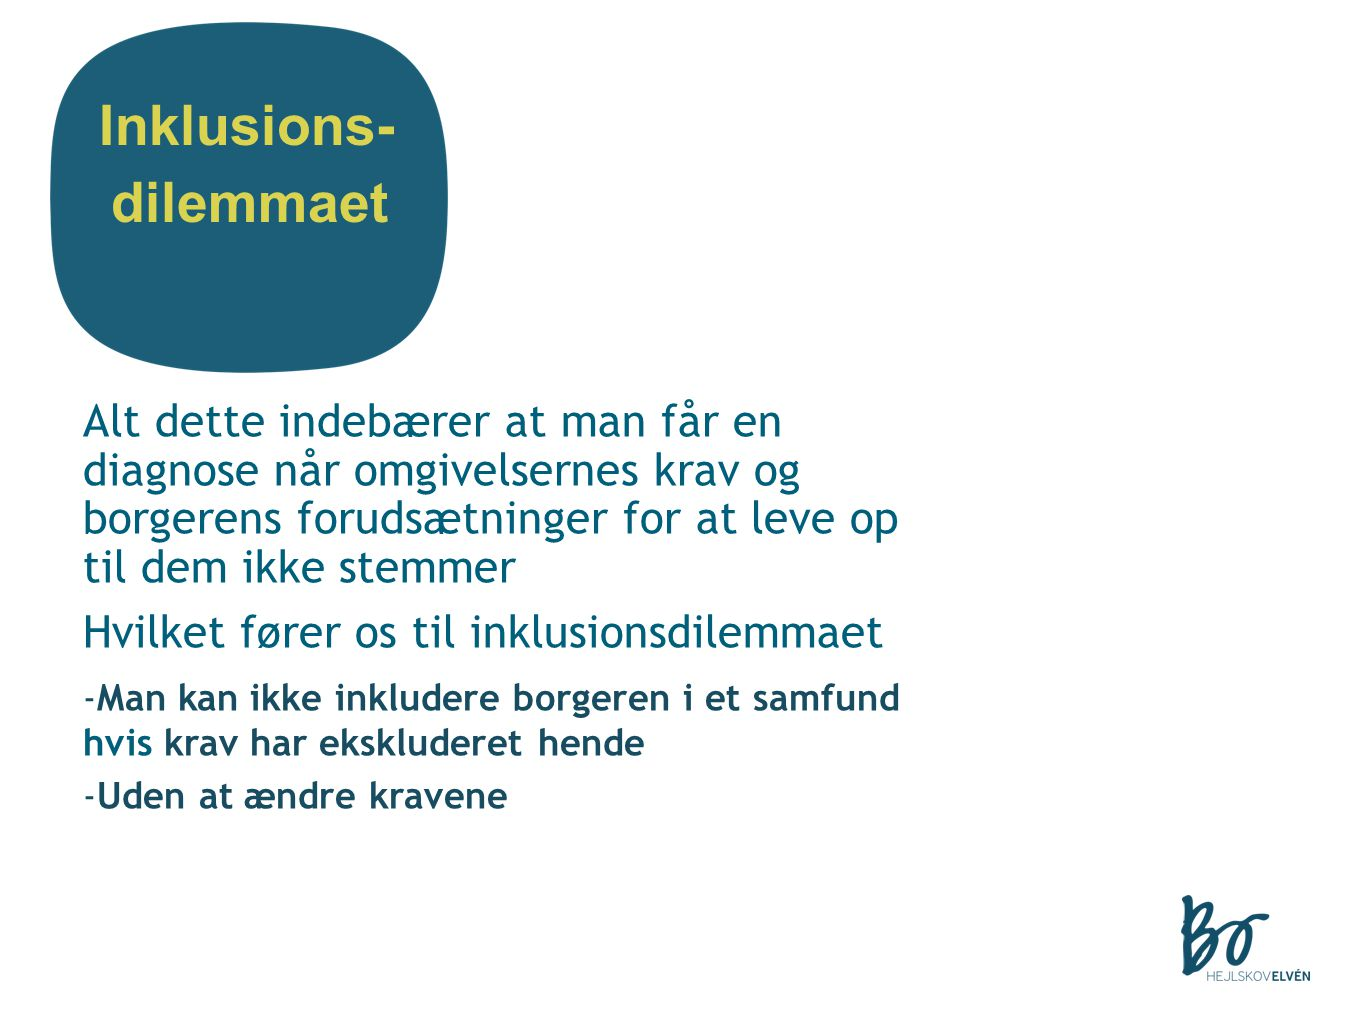 Inklusions- dilemmaet